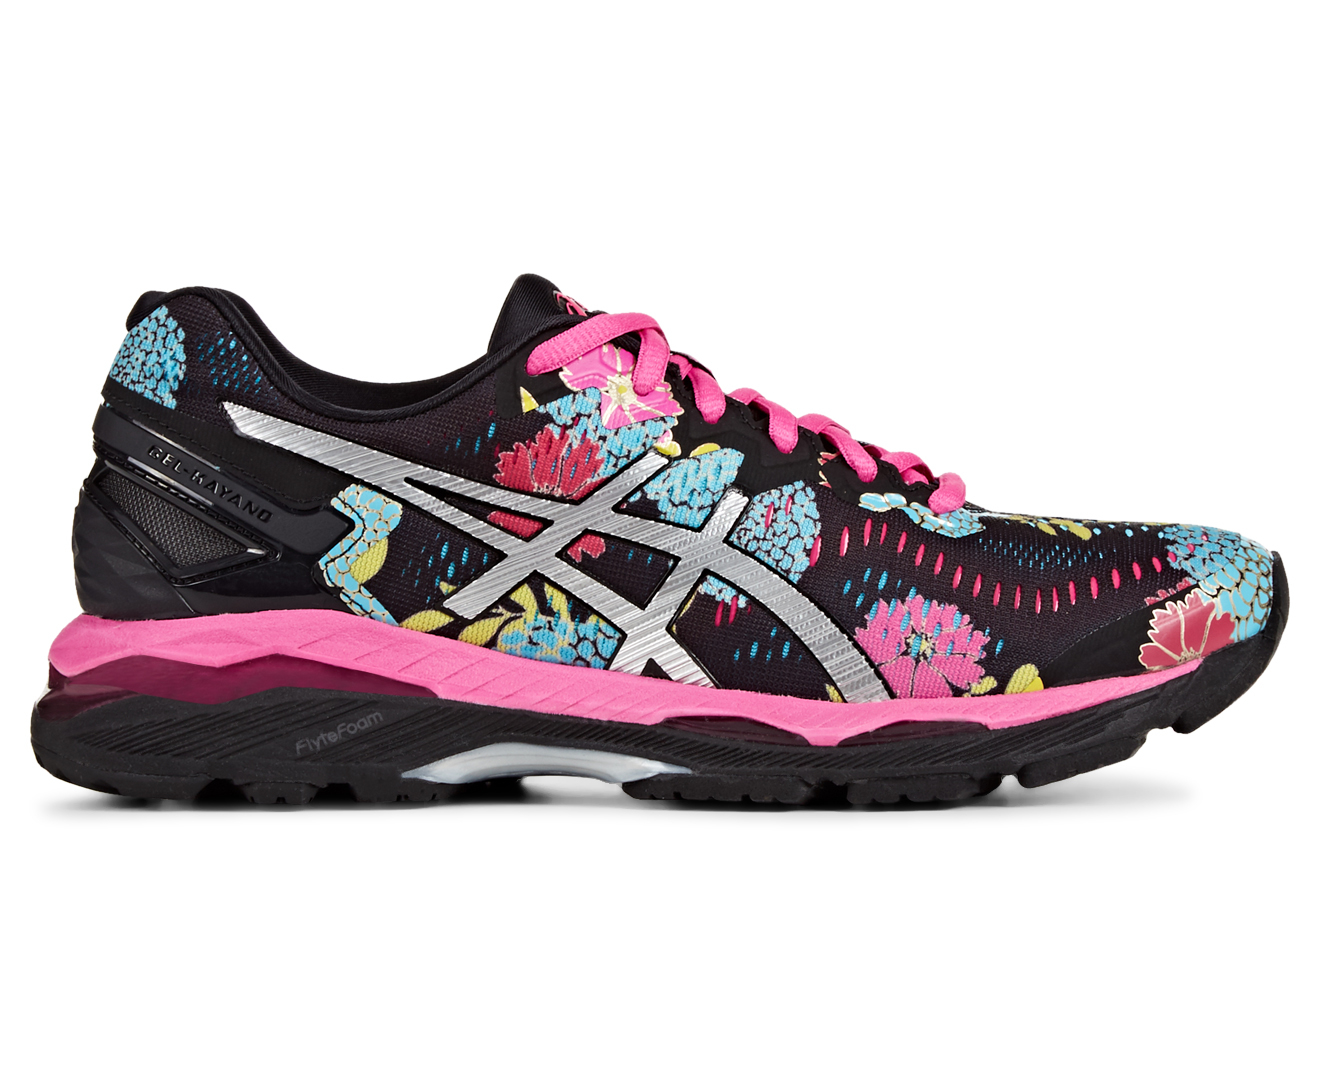 Asics Women S Gel Kayano 23 Shoe Black Silver Pink Glow